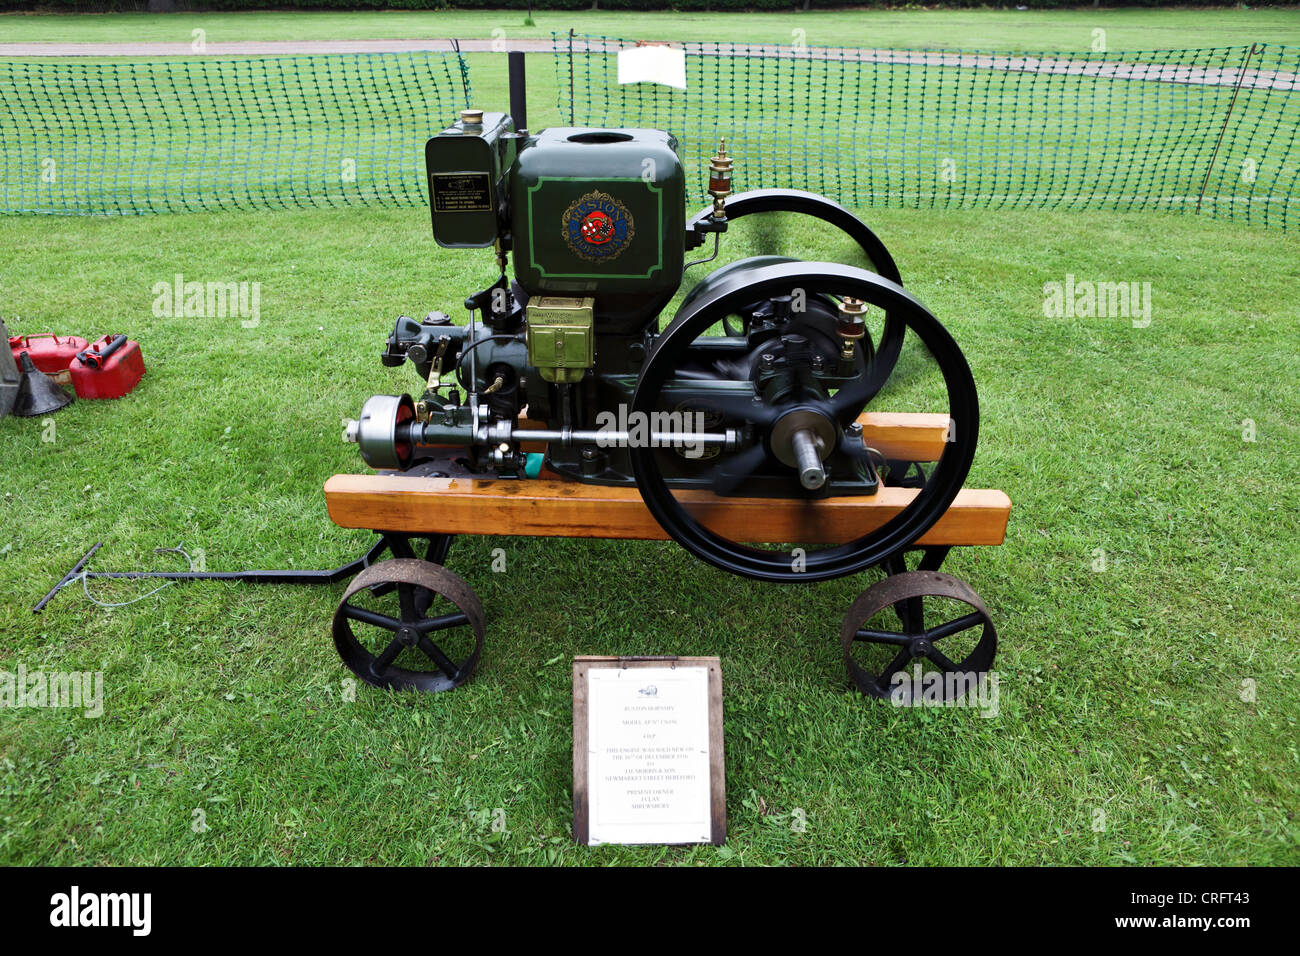 An 1936 RUSTON HORNSBY 4 Horsepower engine, viewed whilst on public display at Acton Burnell, Diamond Jubilee Celebrations. - Stock Image